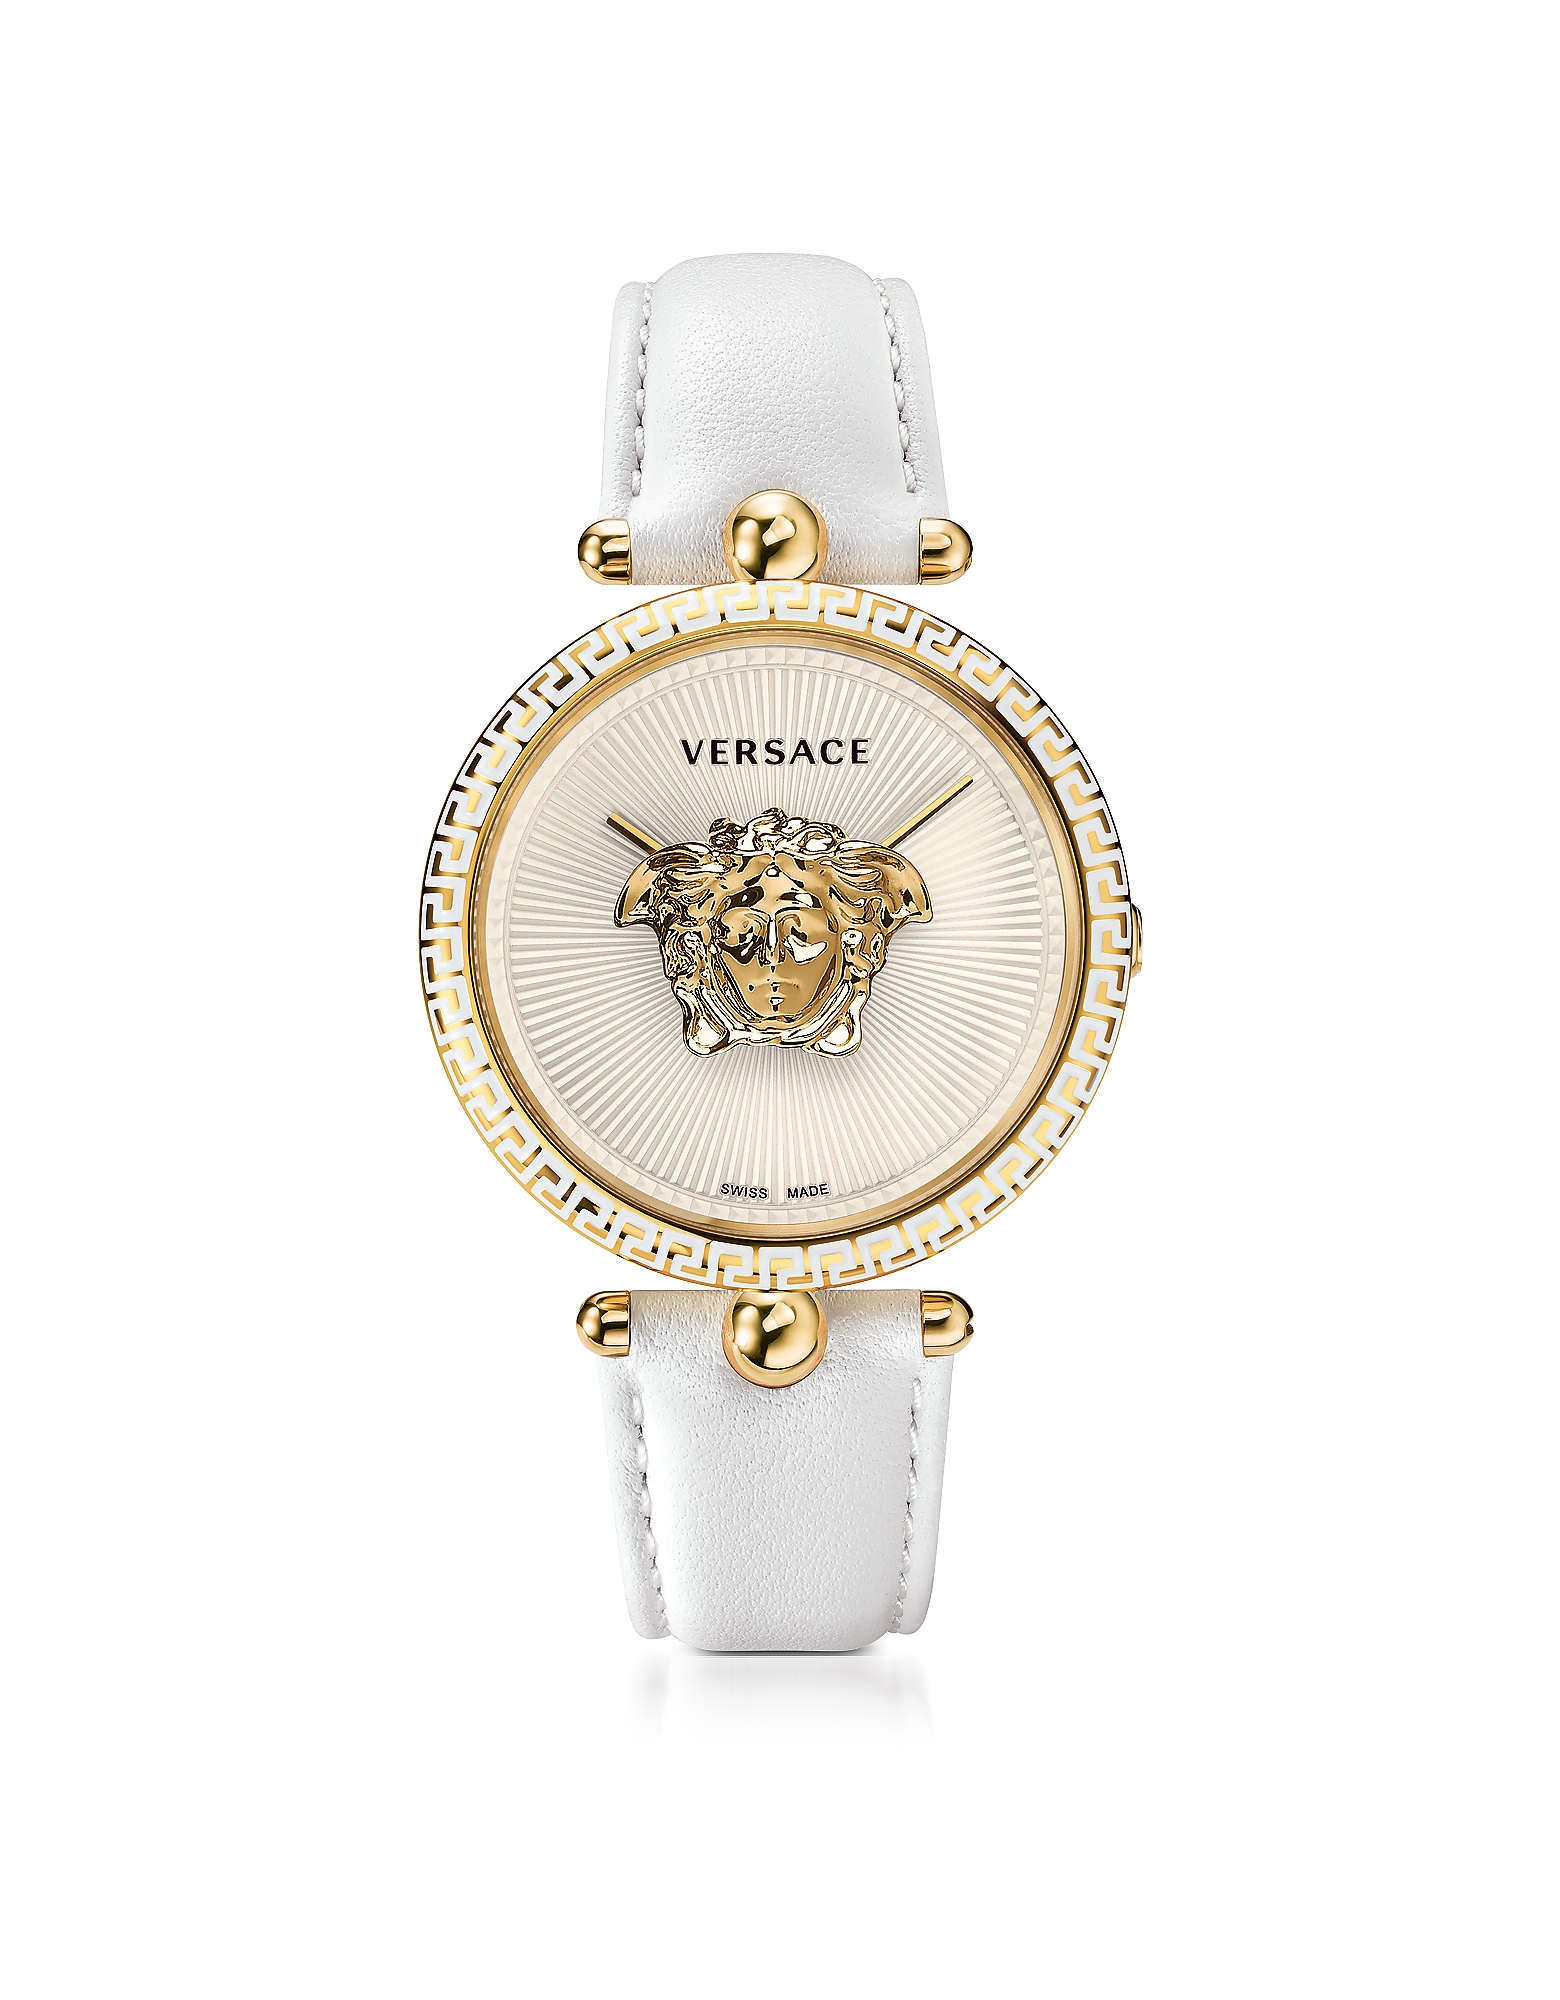 Versace Women's Watches, Palazzo Empire White and PVD Plated Gold Women's Watch w/3D Medusa